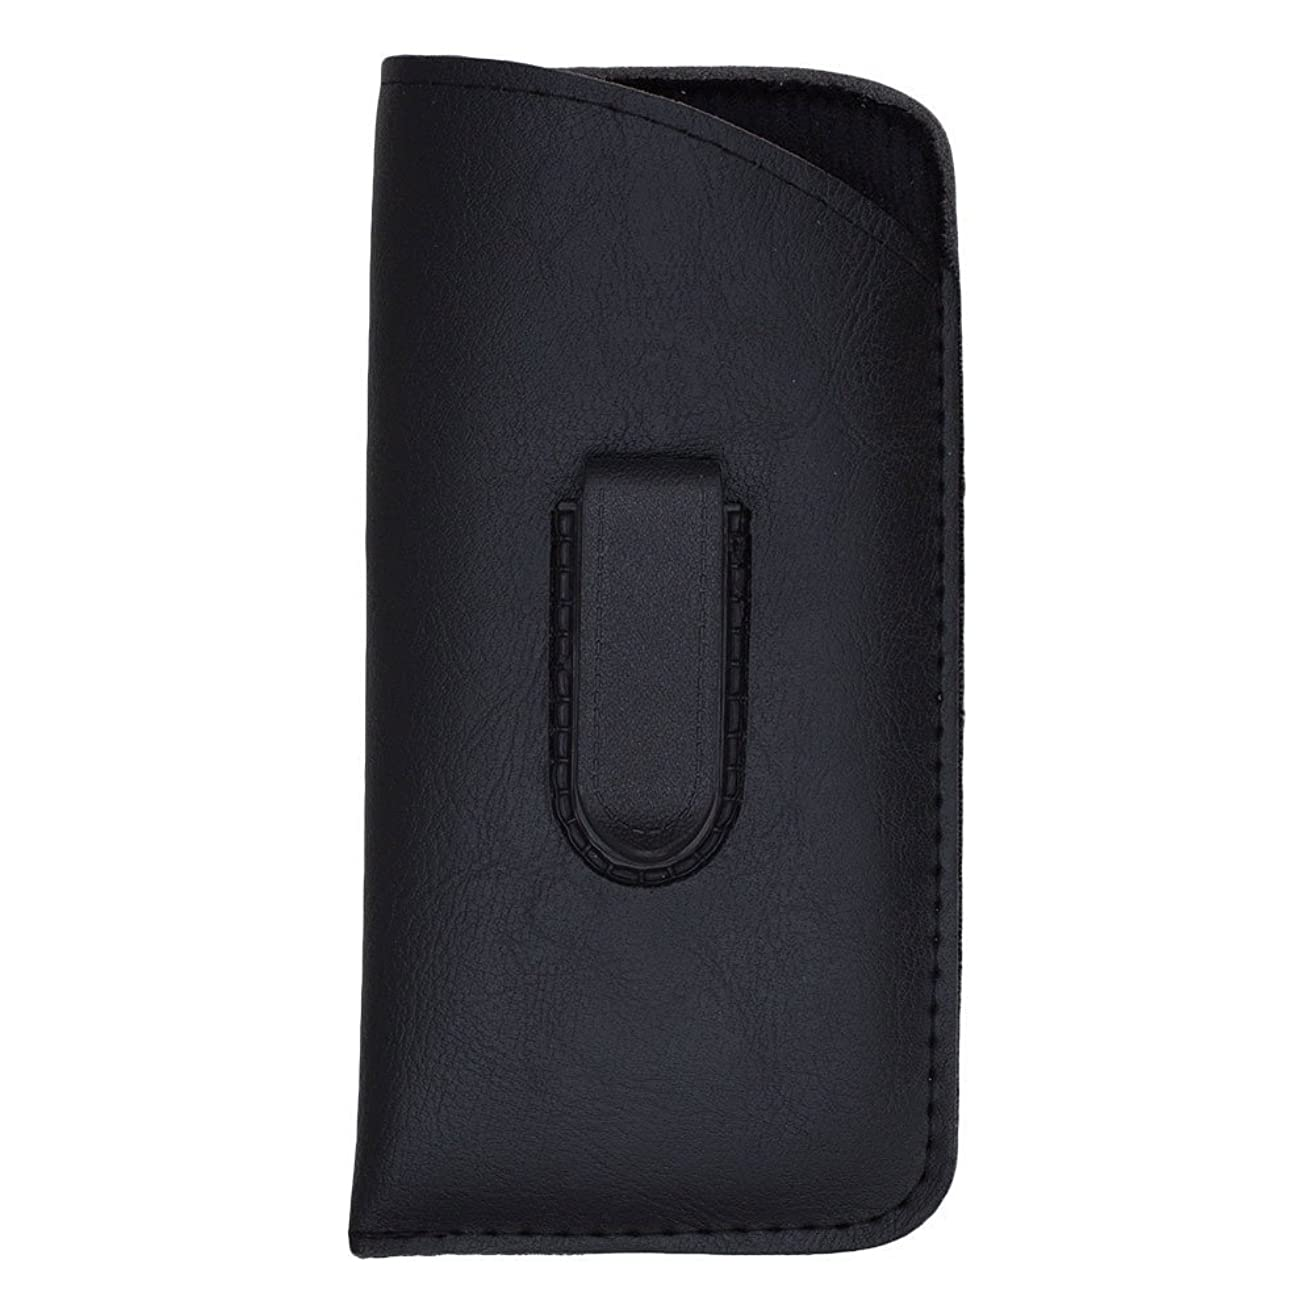 Slip In Glasses Case Sleeve with Pocket Clip – Protects Eyewear from Damages